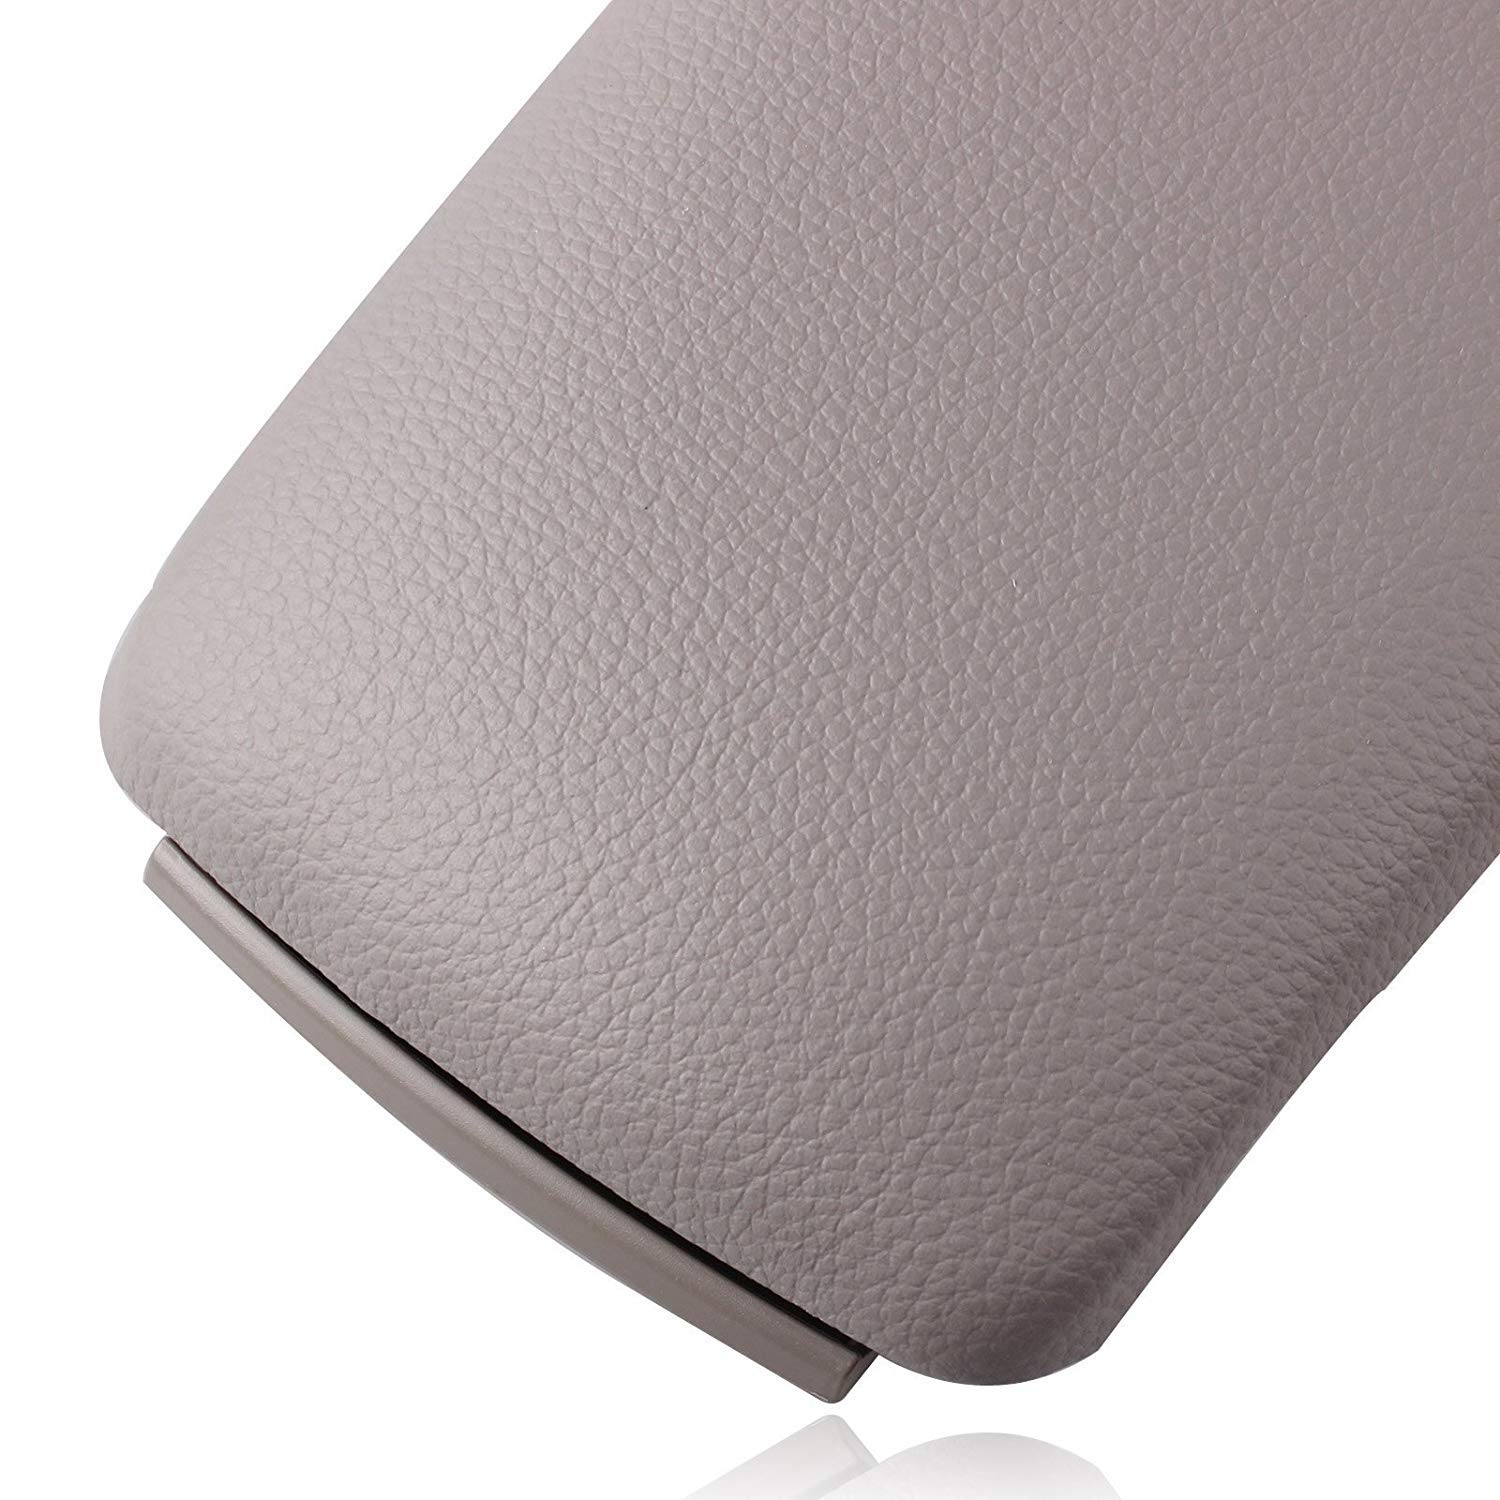 Heart Horse Car Leather Armrest Arm Rest Center Console Lid Cover For AUDI A4 B6 Interior Replacement Grey